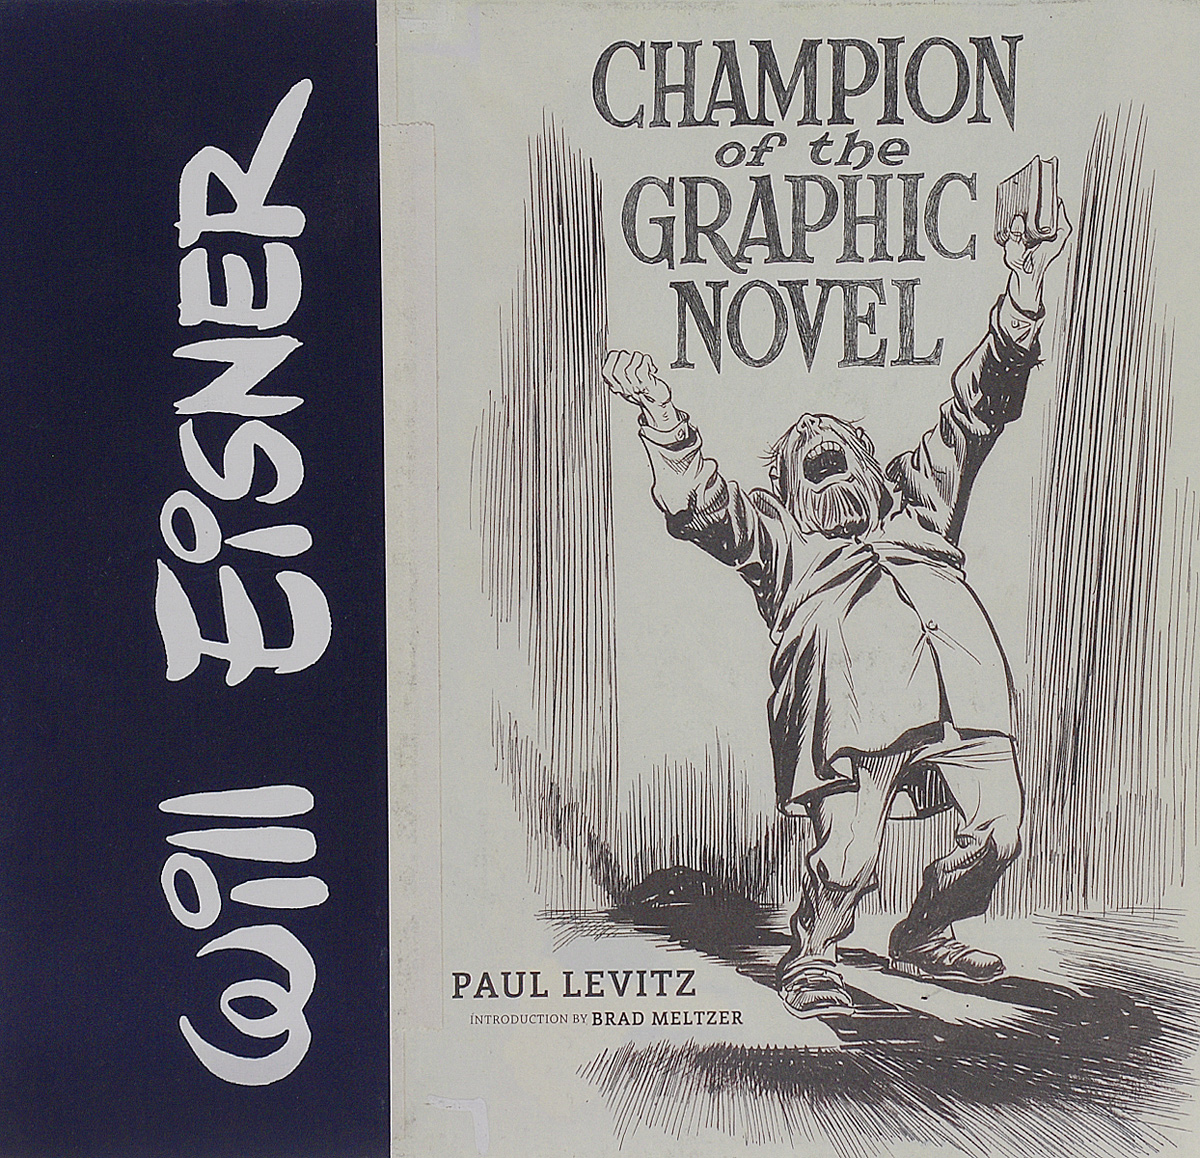 Will Eisner: Champion of the Graphic Novel karin kukkonen studying comics and graphic novels